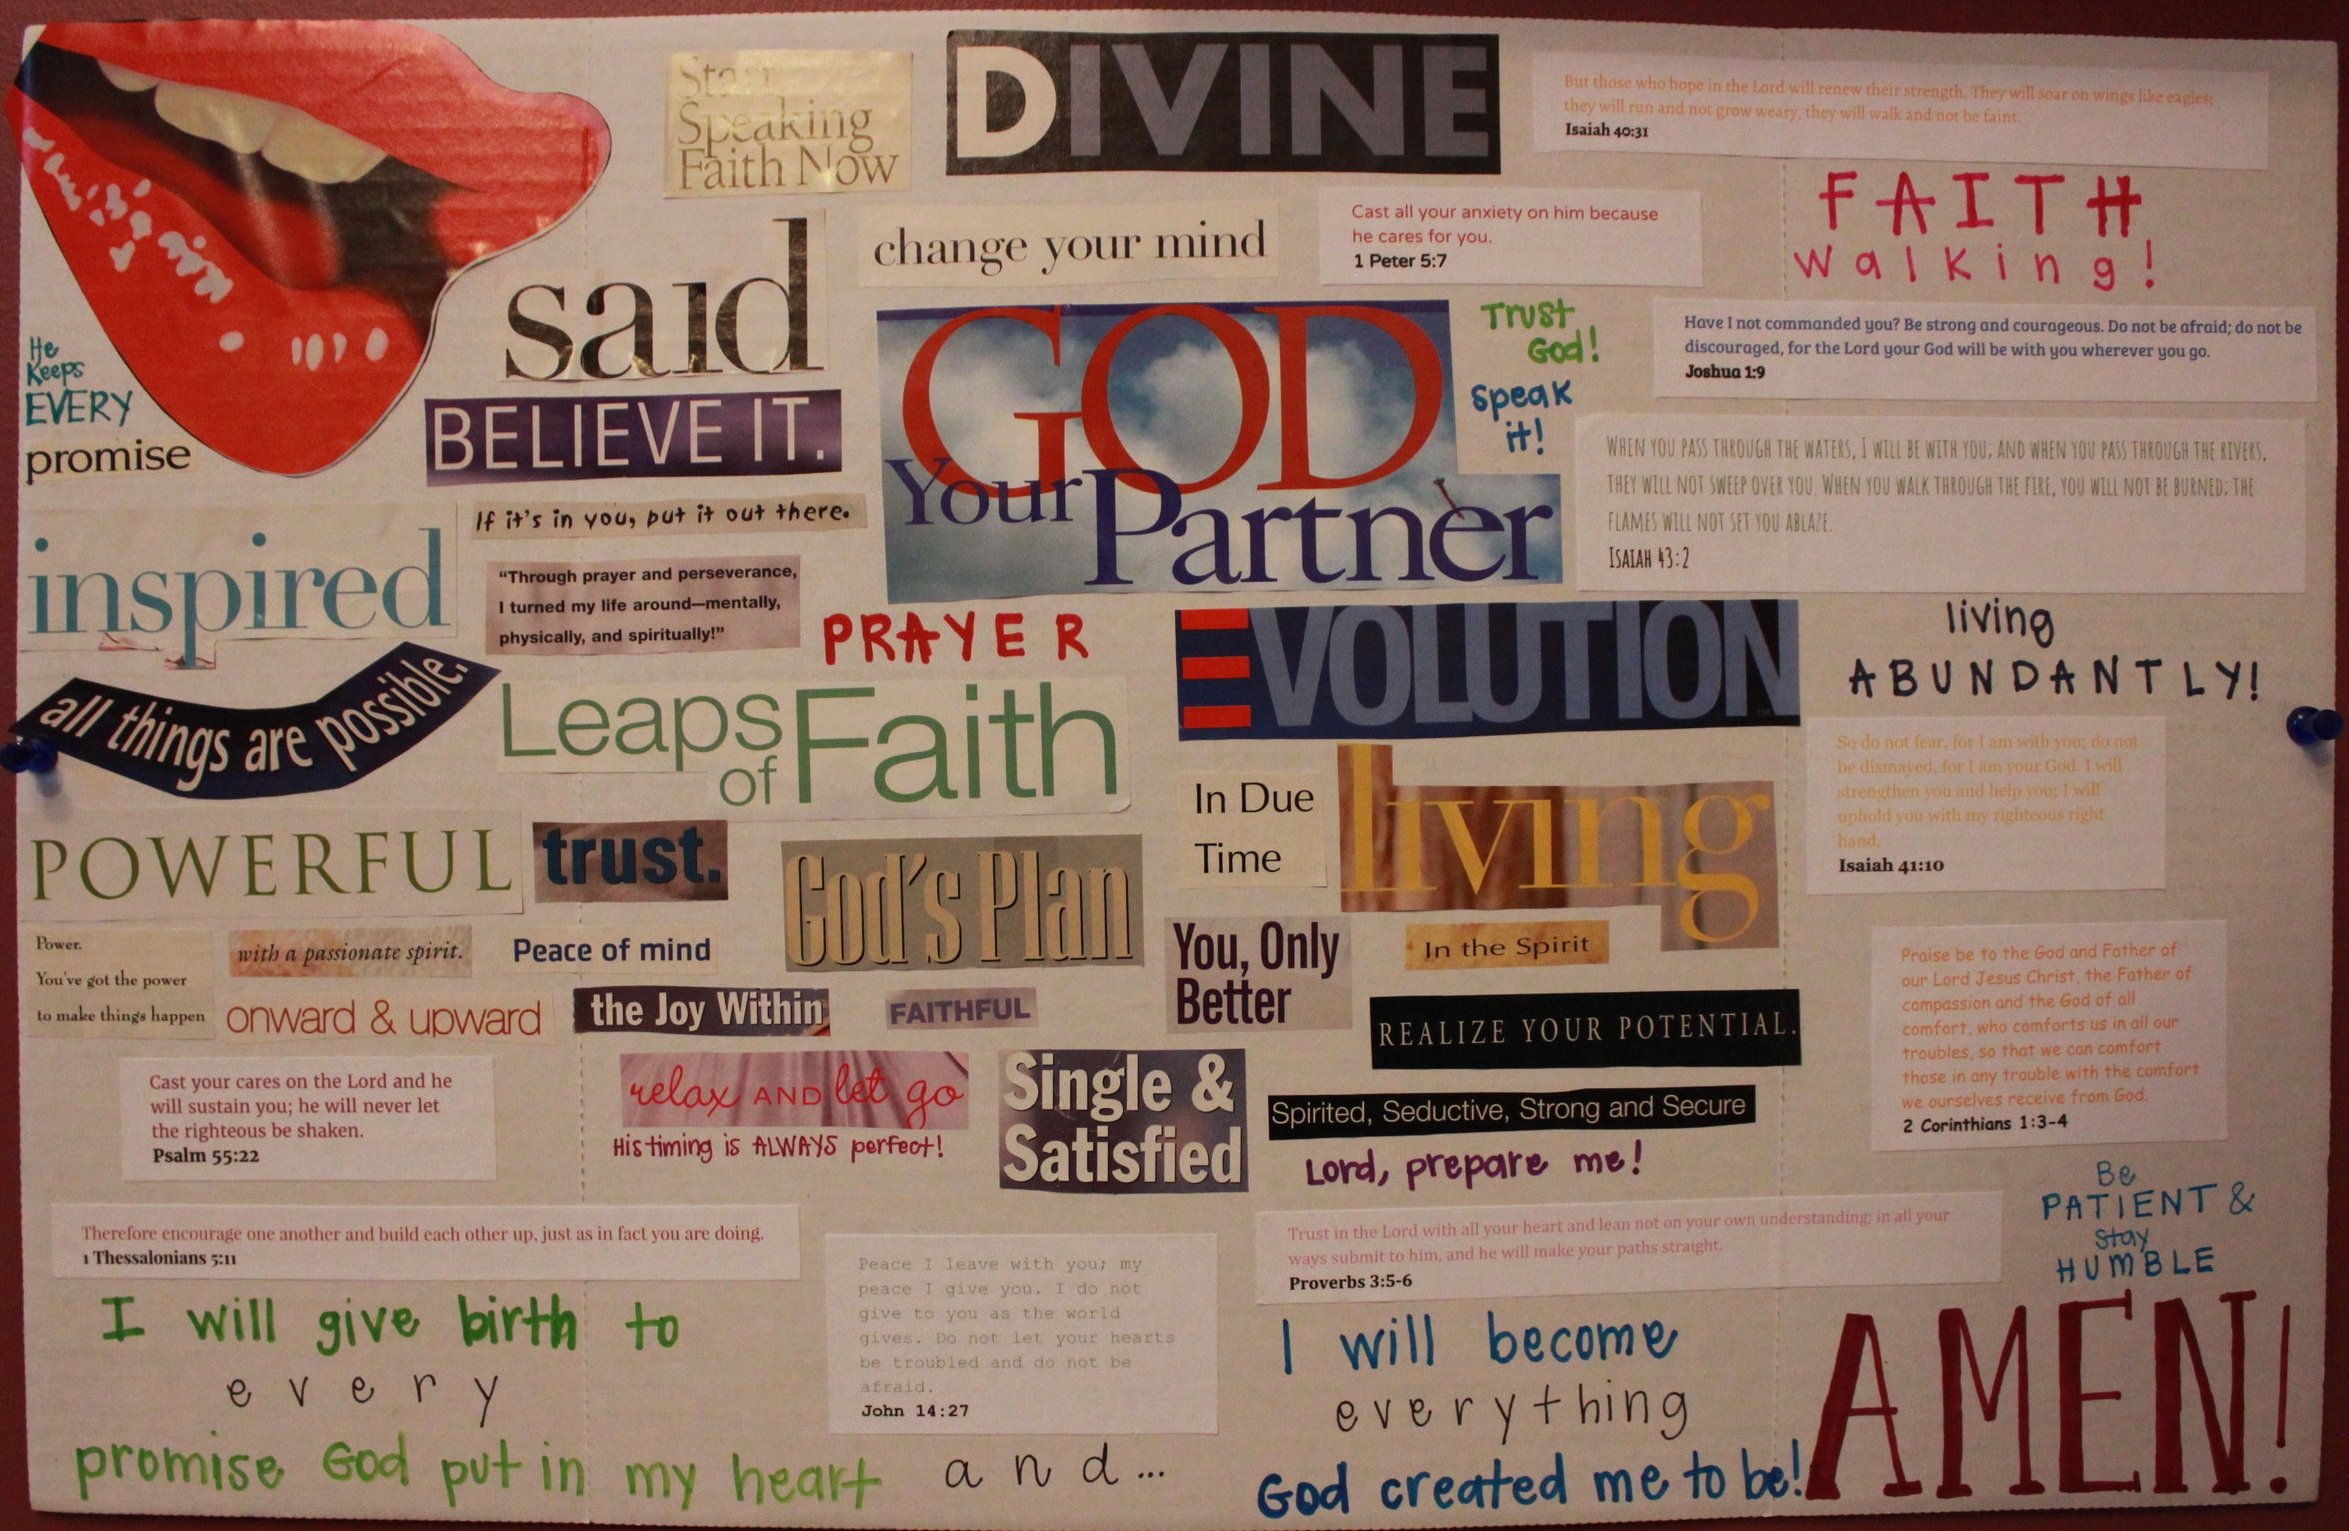 For my spiritual vision board, I wrote out scriptures and phrases to add to the purpose of the board.